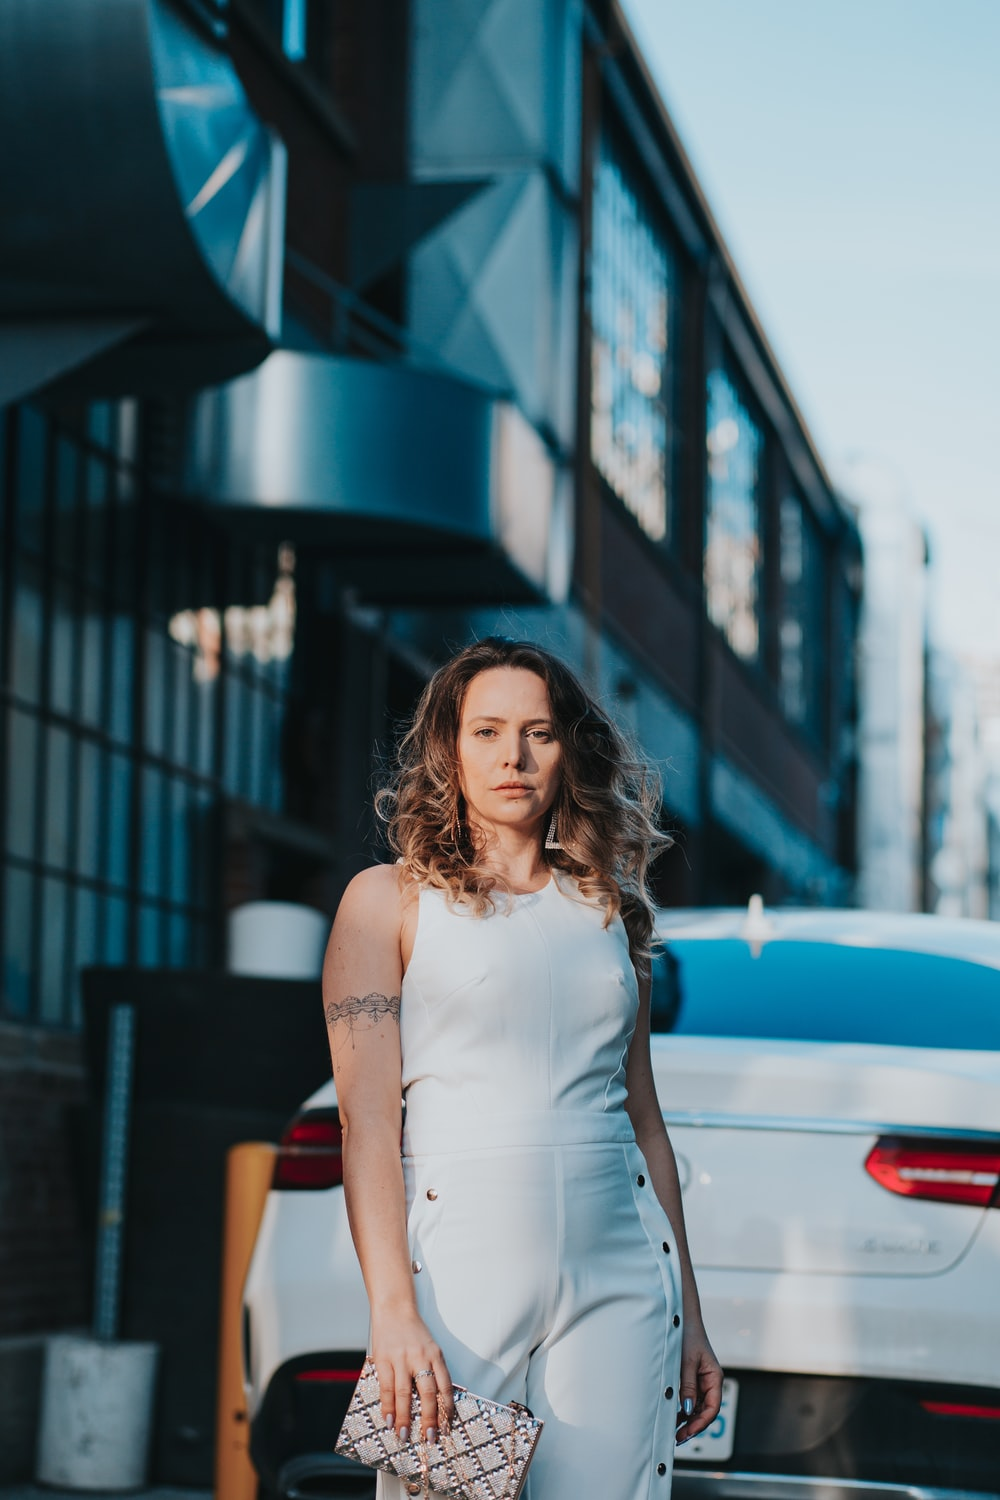 woman in white sleeveless dress standing near red car during daytime